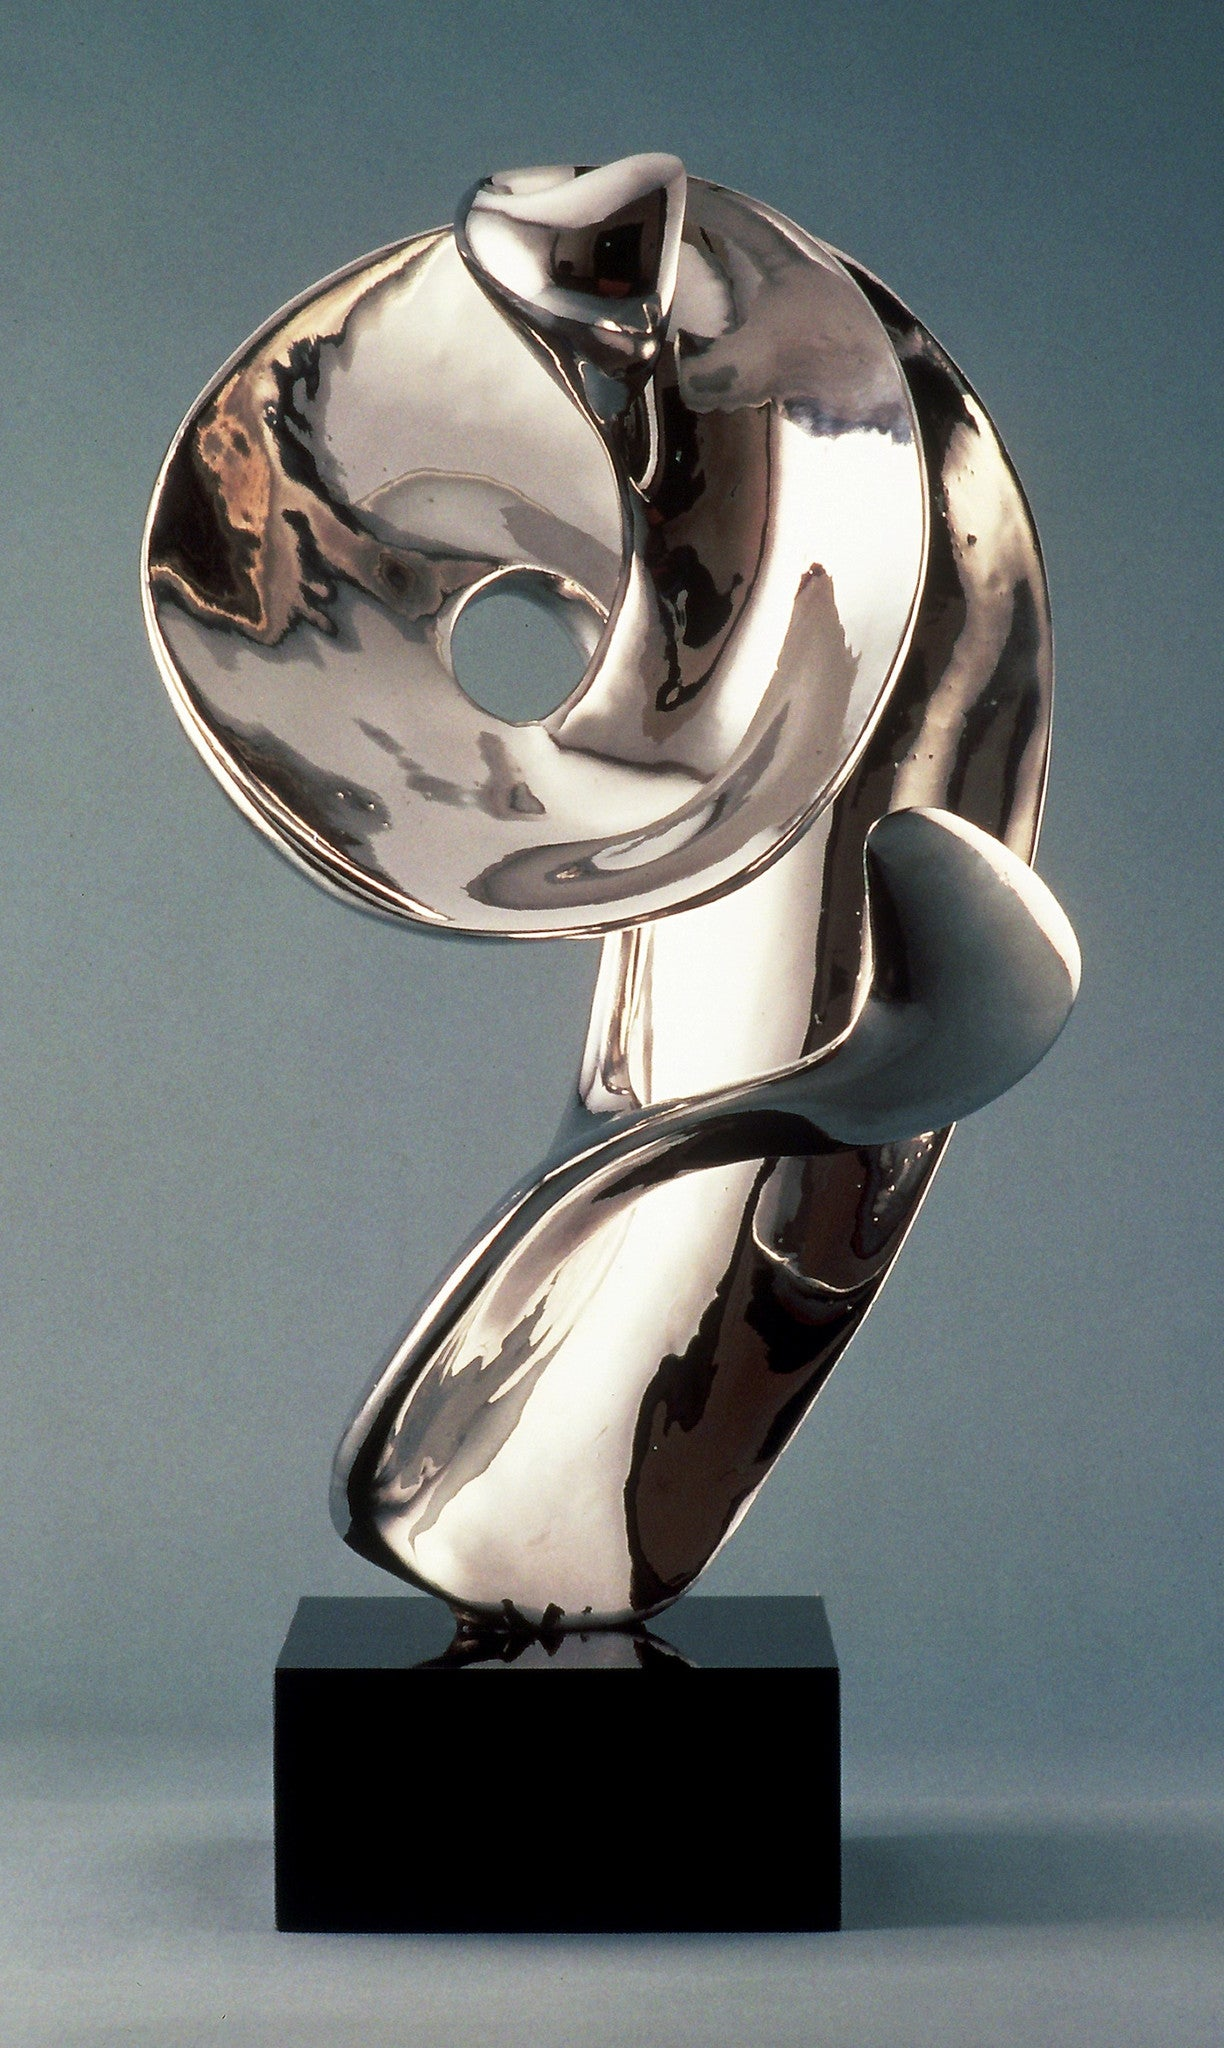 Rebecca / 28 x 17 x 17 / Stainless Steel